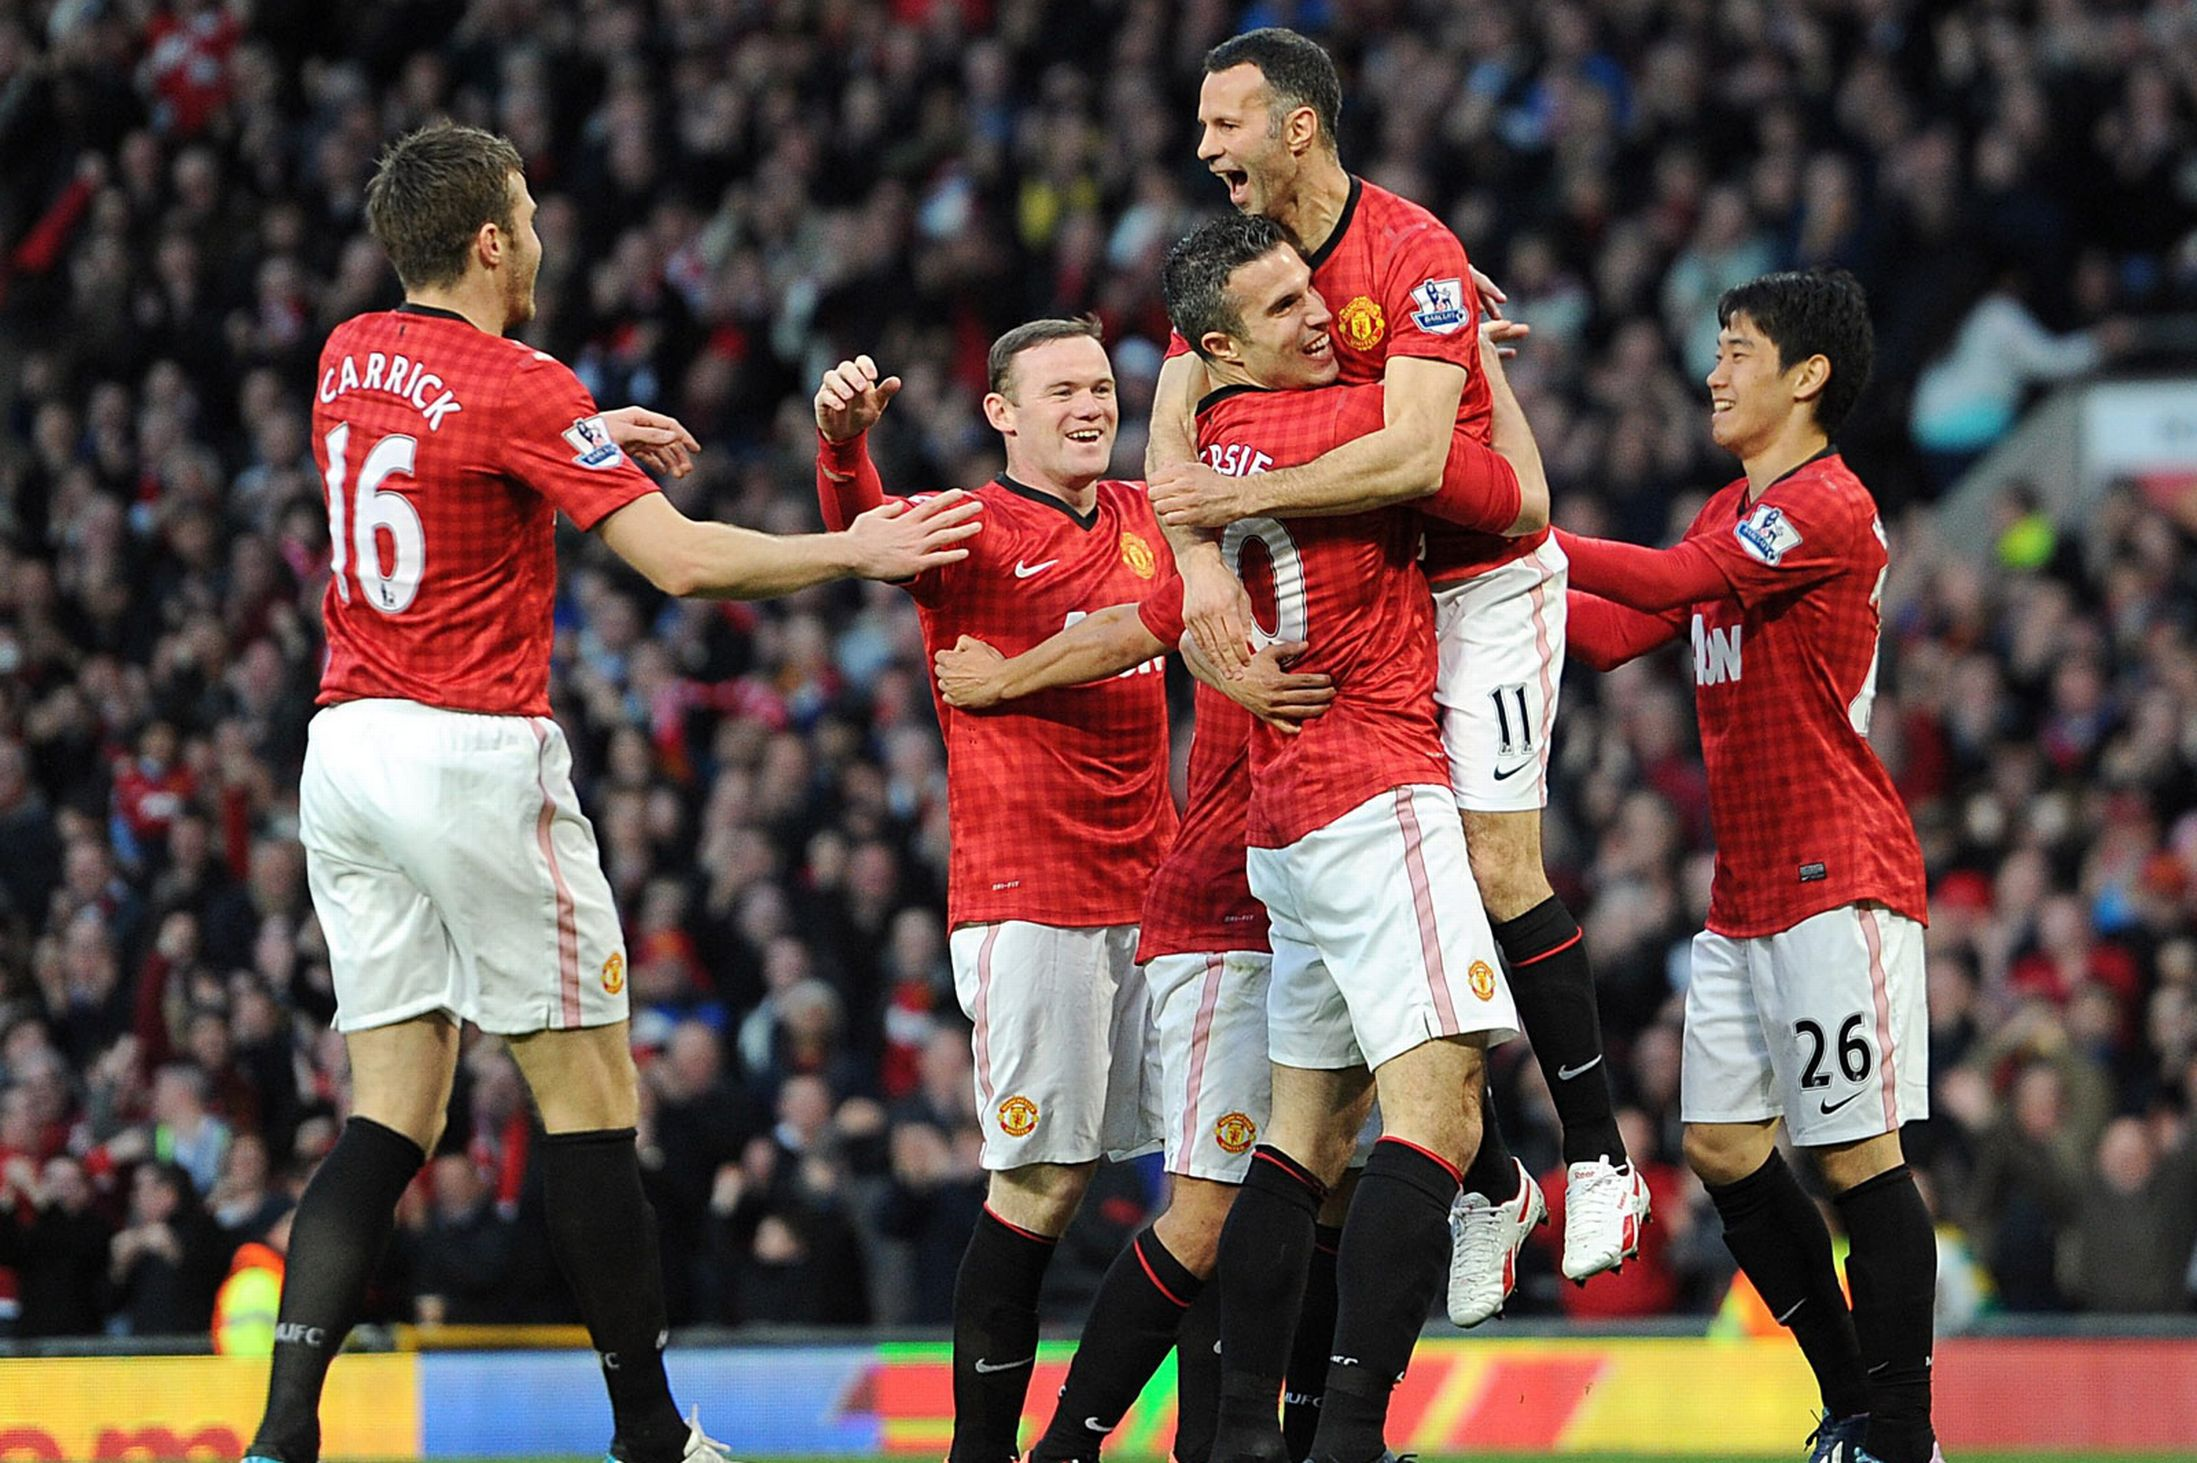 Manchester United: A club that is about more than just trophies